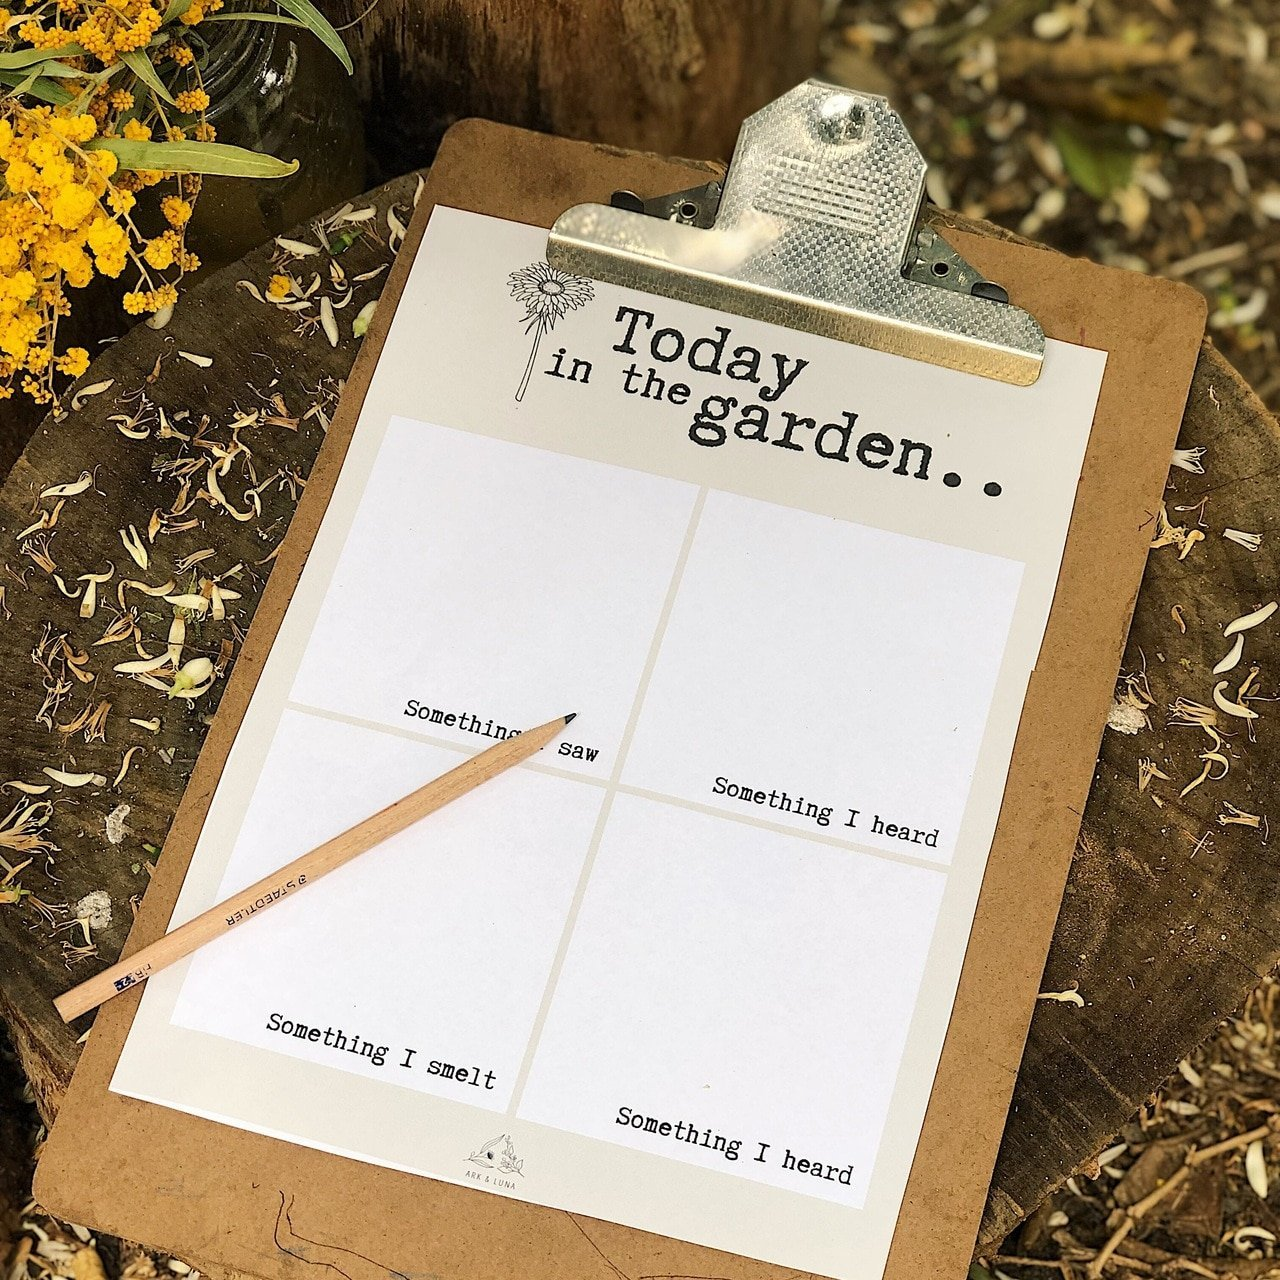 Mindful Garden Journal - Digital Download